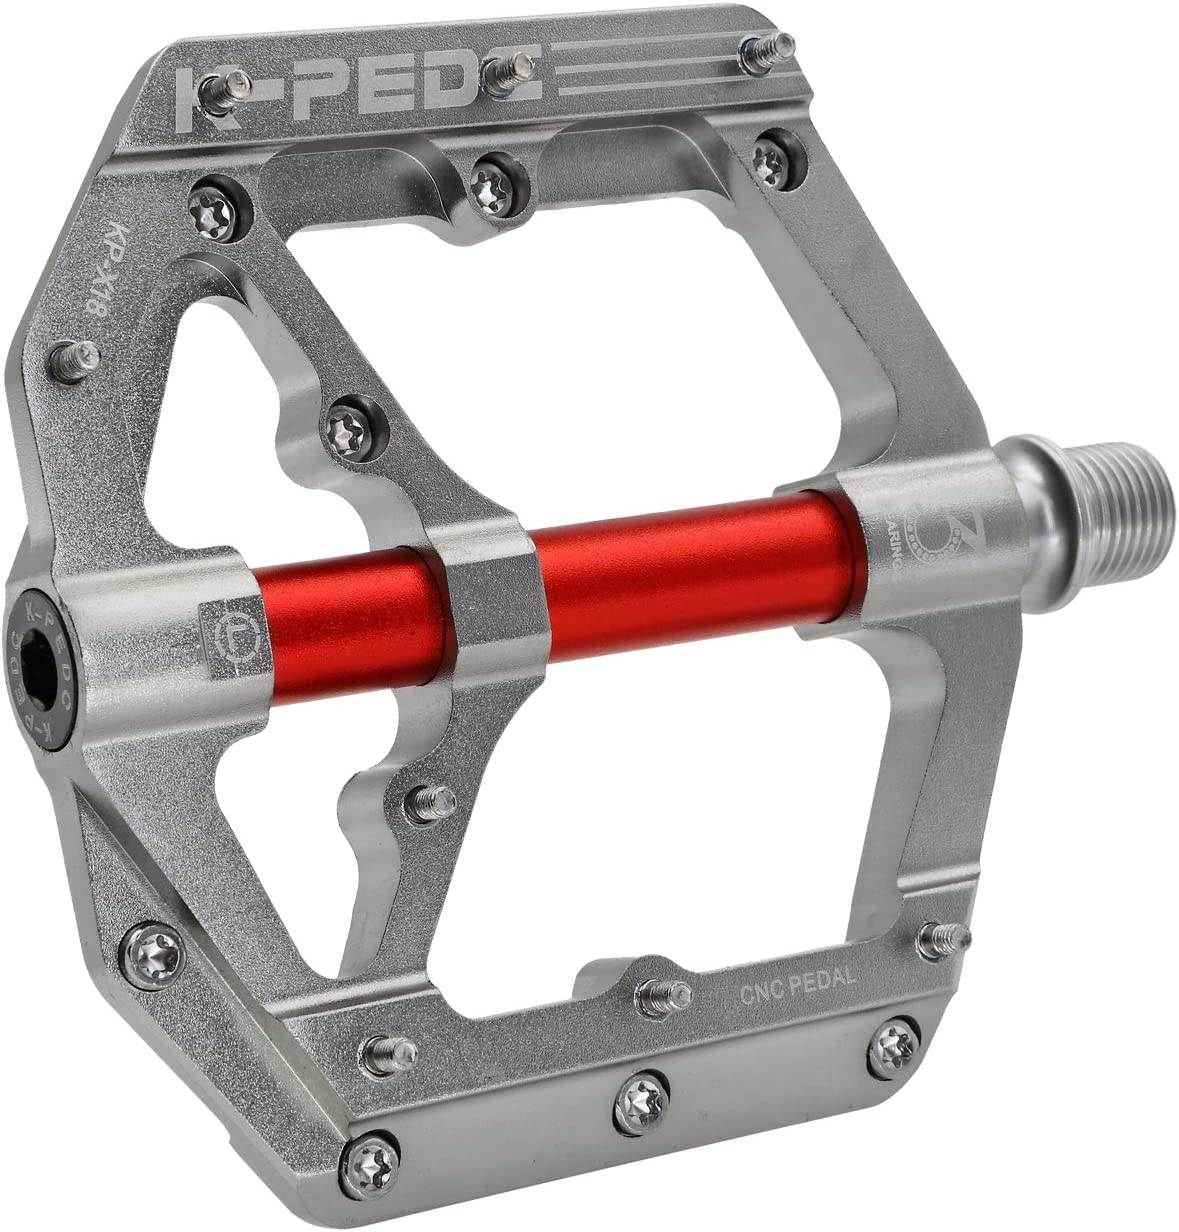 K PEDC Mountain Bike Pedals3 Sealed Bearings Ultra Strong Colorful Cr-Mo Aluminum Alloy CNC Machined 9//16 Non-Slip for Road BMX MTB Fixie Bikes